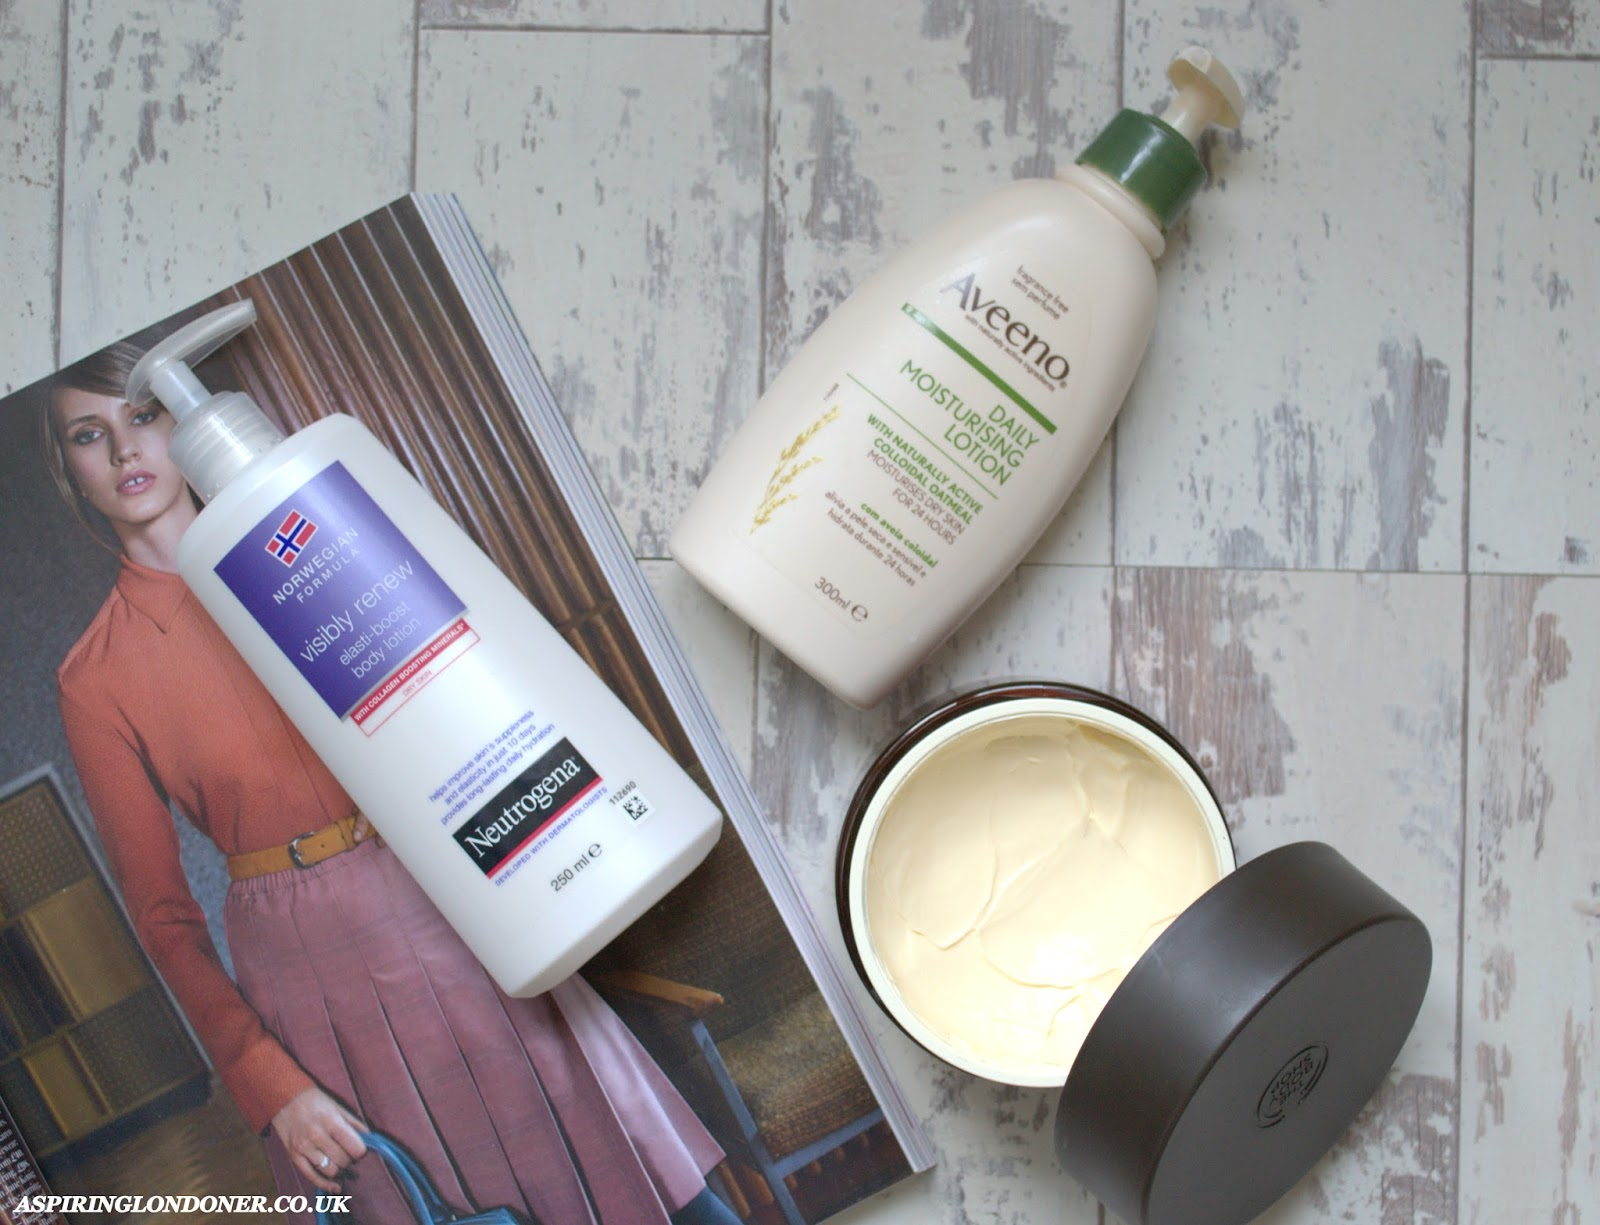 Winter Skin Saviour Body Lotions - Aspiring Londoner